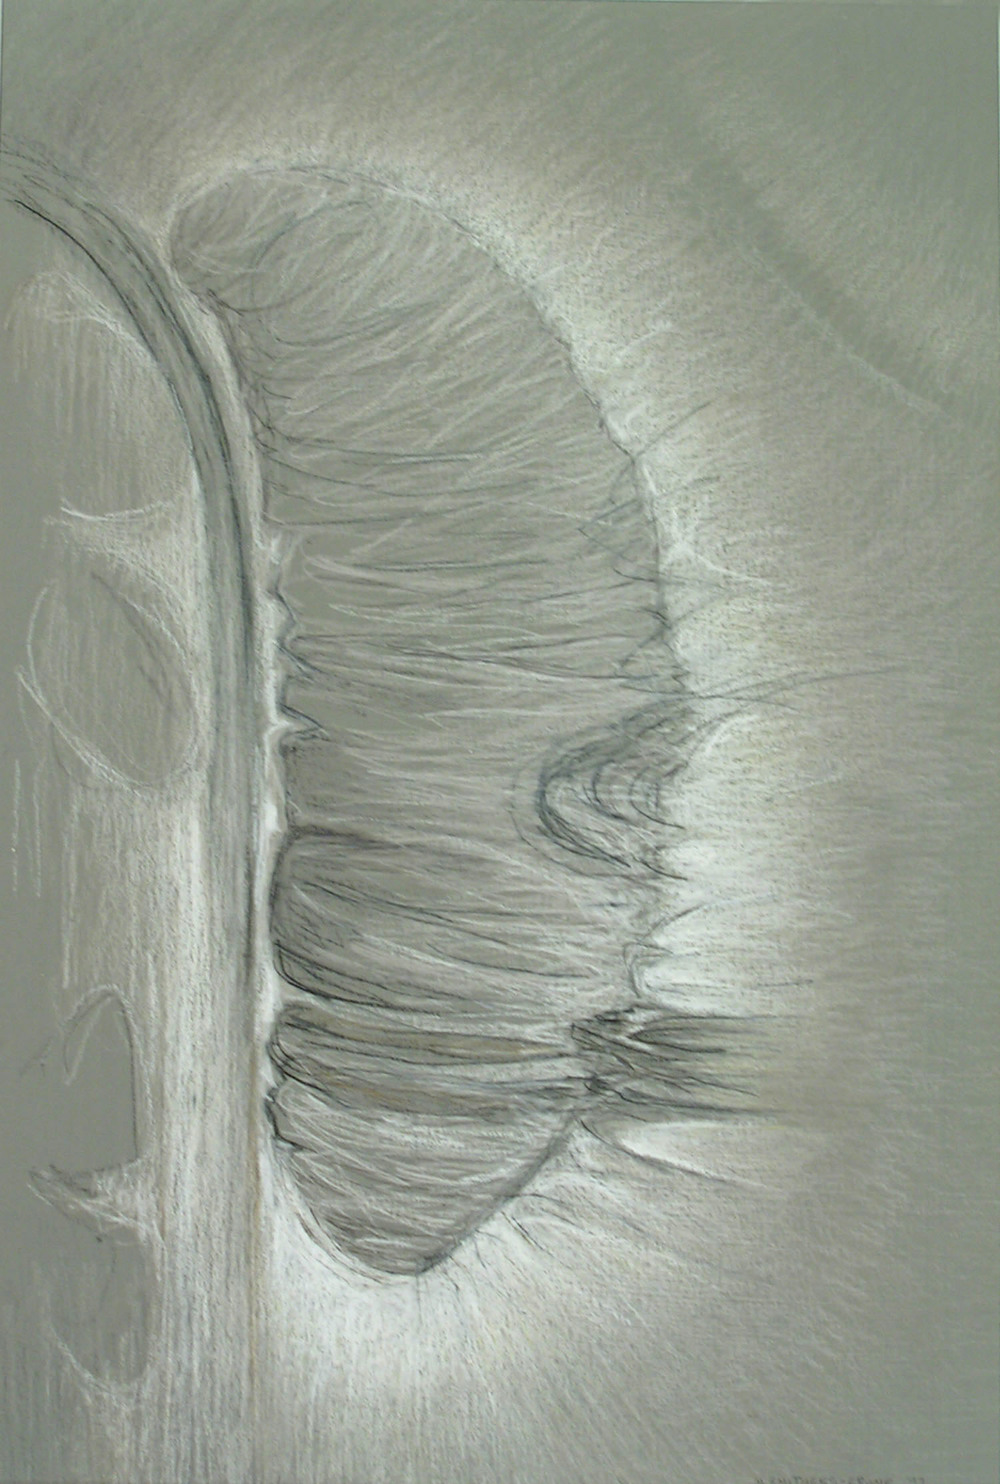 Shroud,  1997  Prismacolor on paper 18 x 14 inches